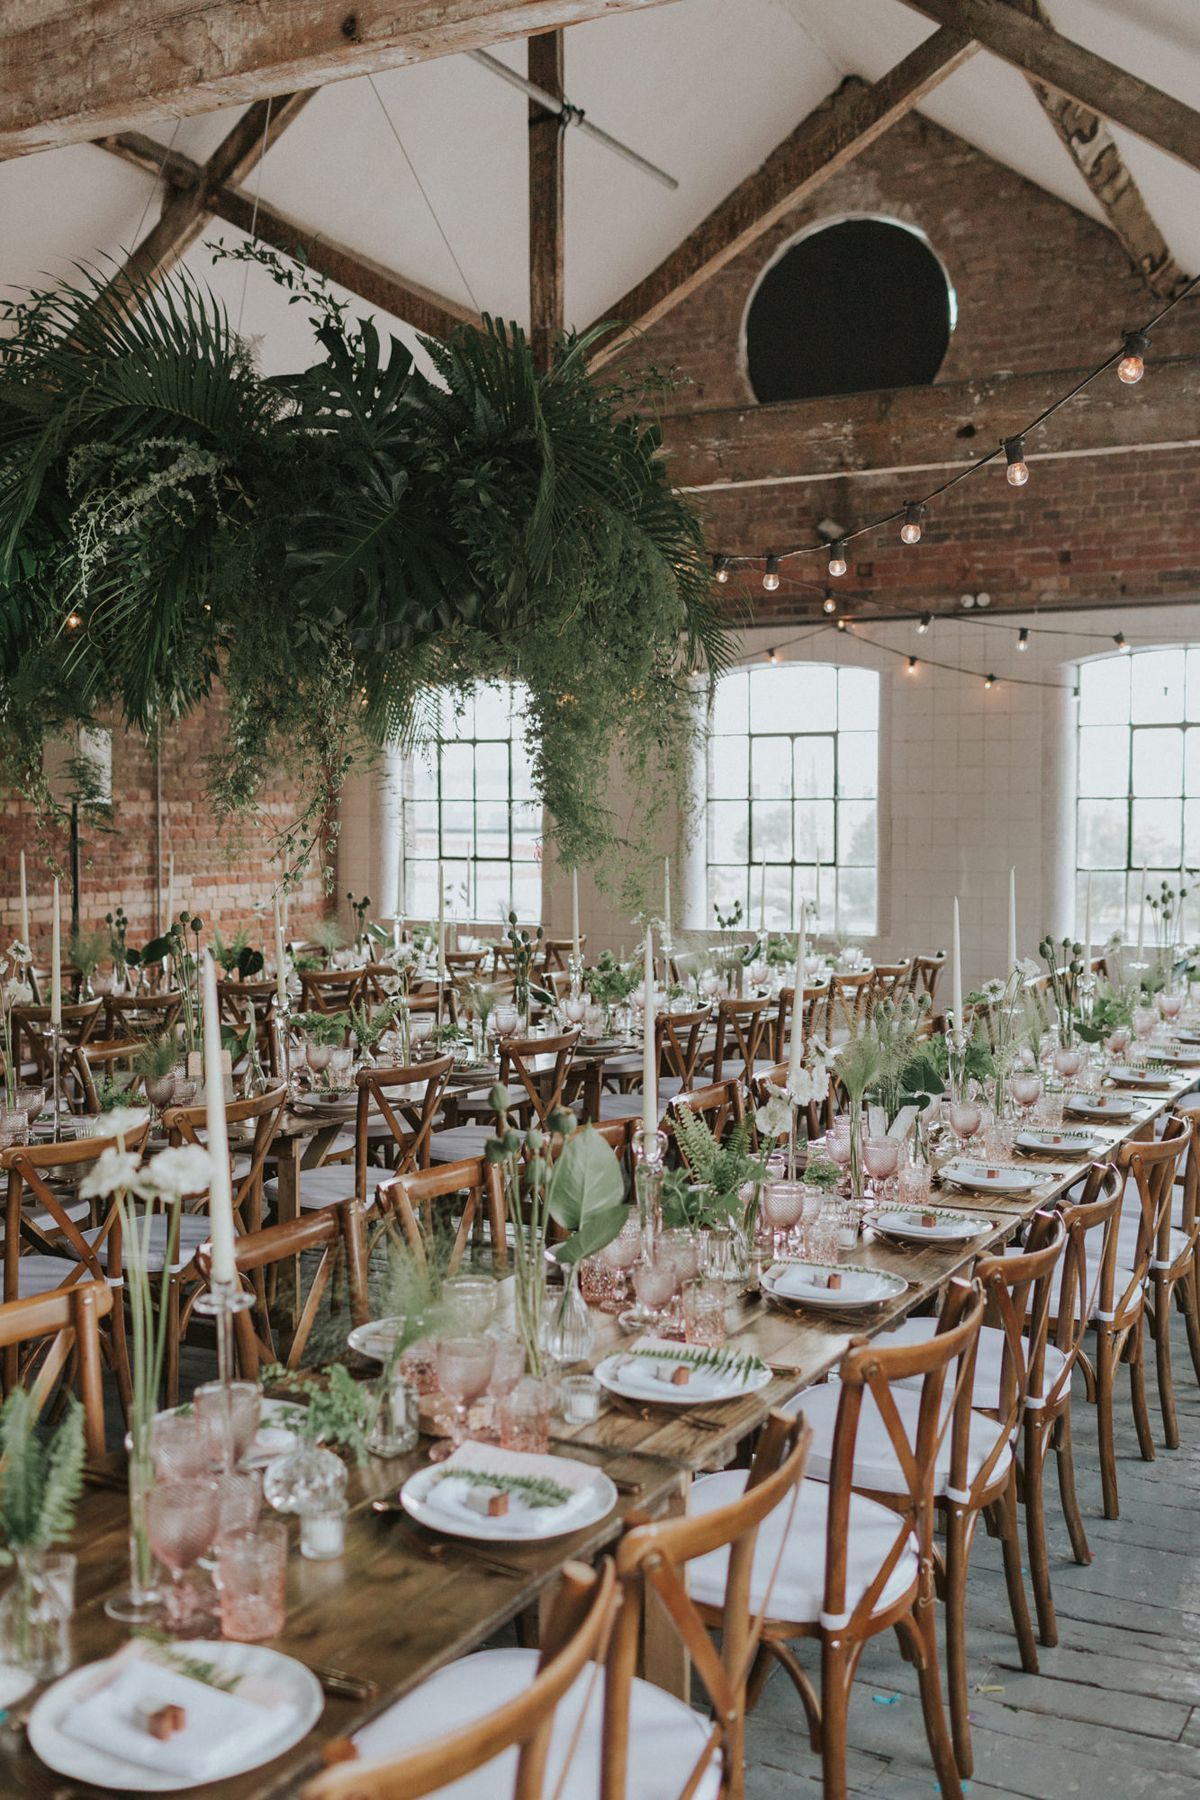 Foliage Chandelier Fern And Foliage Table Centrepieces And Peach Glassware Photography By We Heart Pictures London Wedding Venues Fern Wedding Jewish Wedding